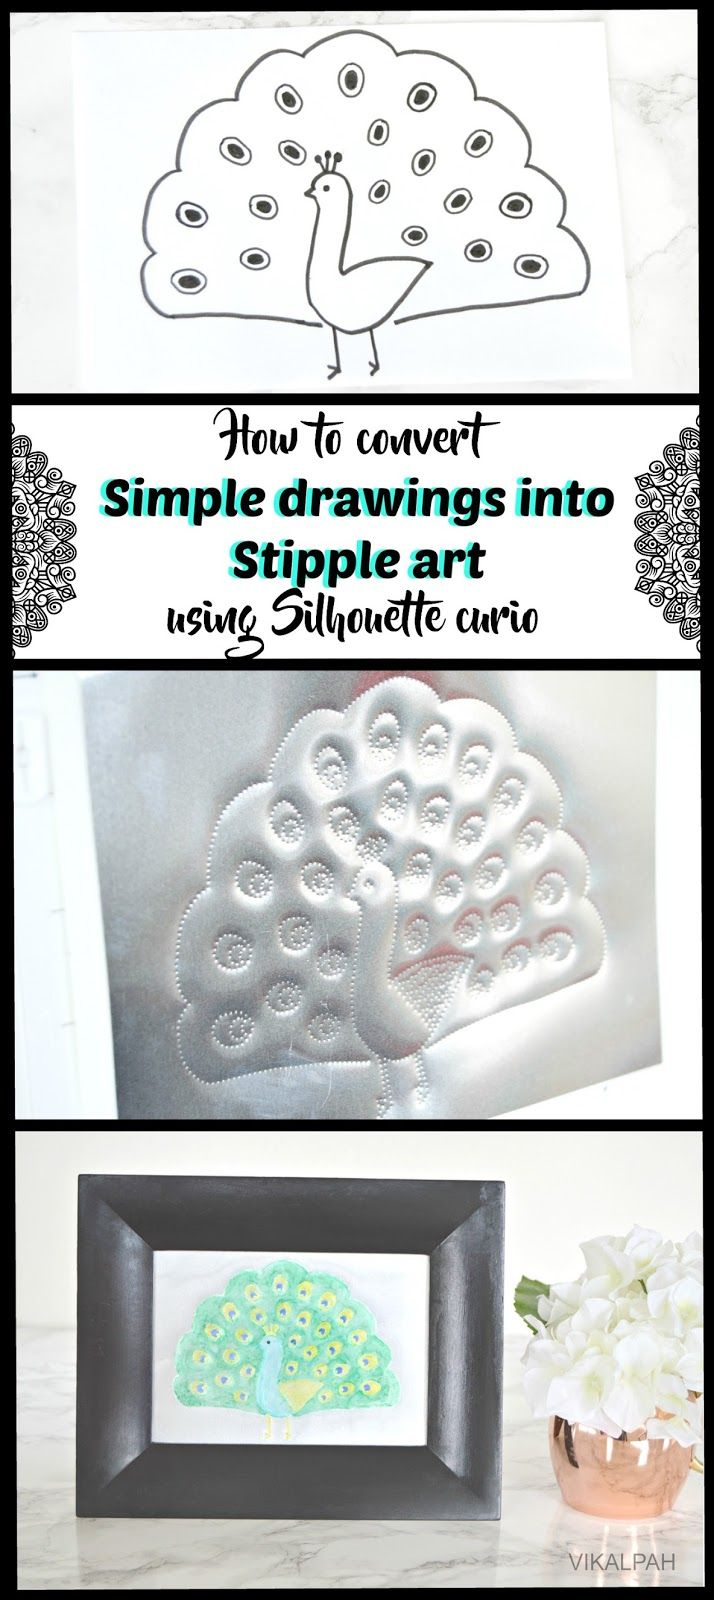 How to convert simple drawings into stipple art using Silhouette curio